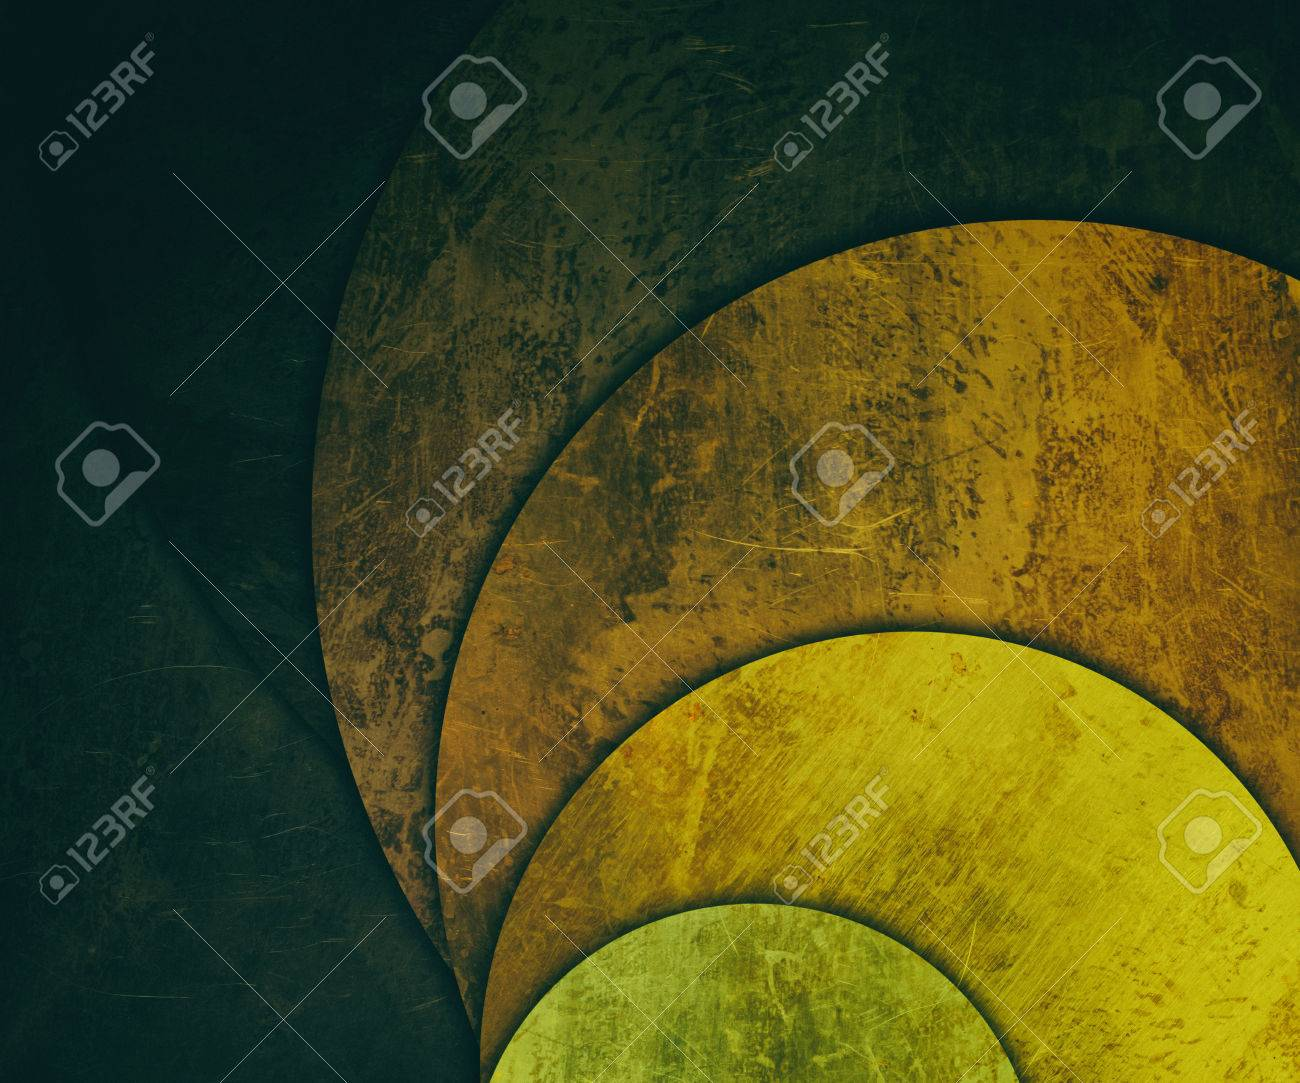 Old And Rusty Metal Plates Background Stock Photo, Picture And ...